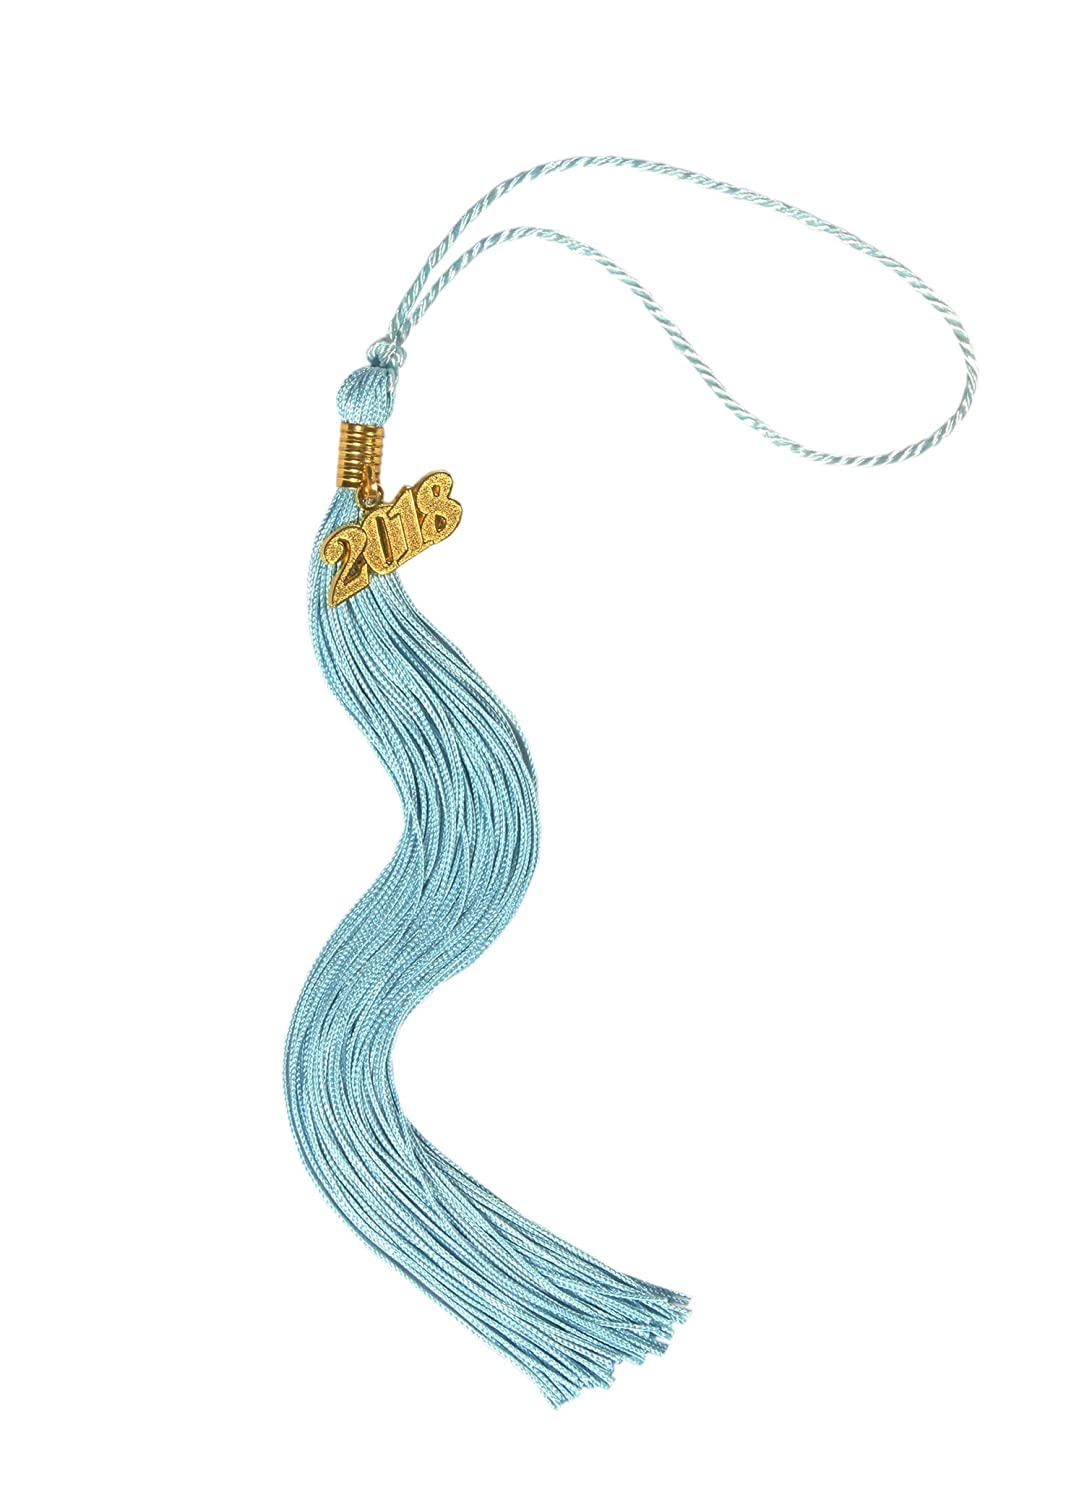 GradPlaza Graduation Tassel with 2018 Year Charm 4337038895